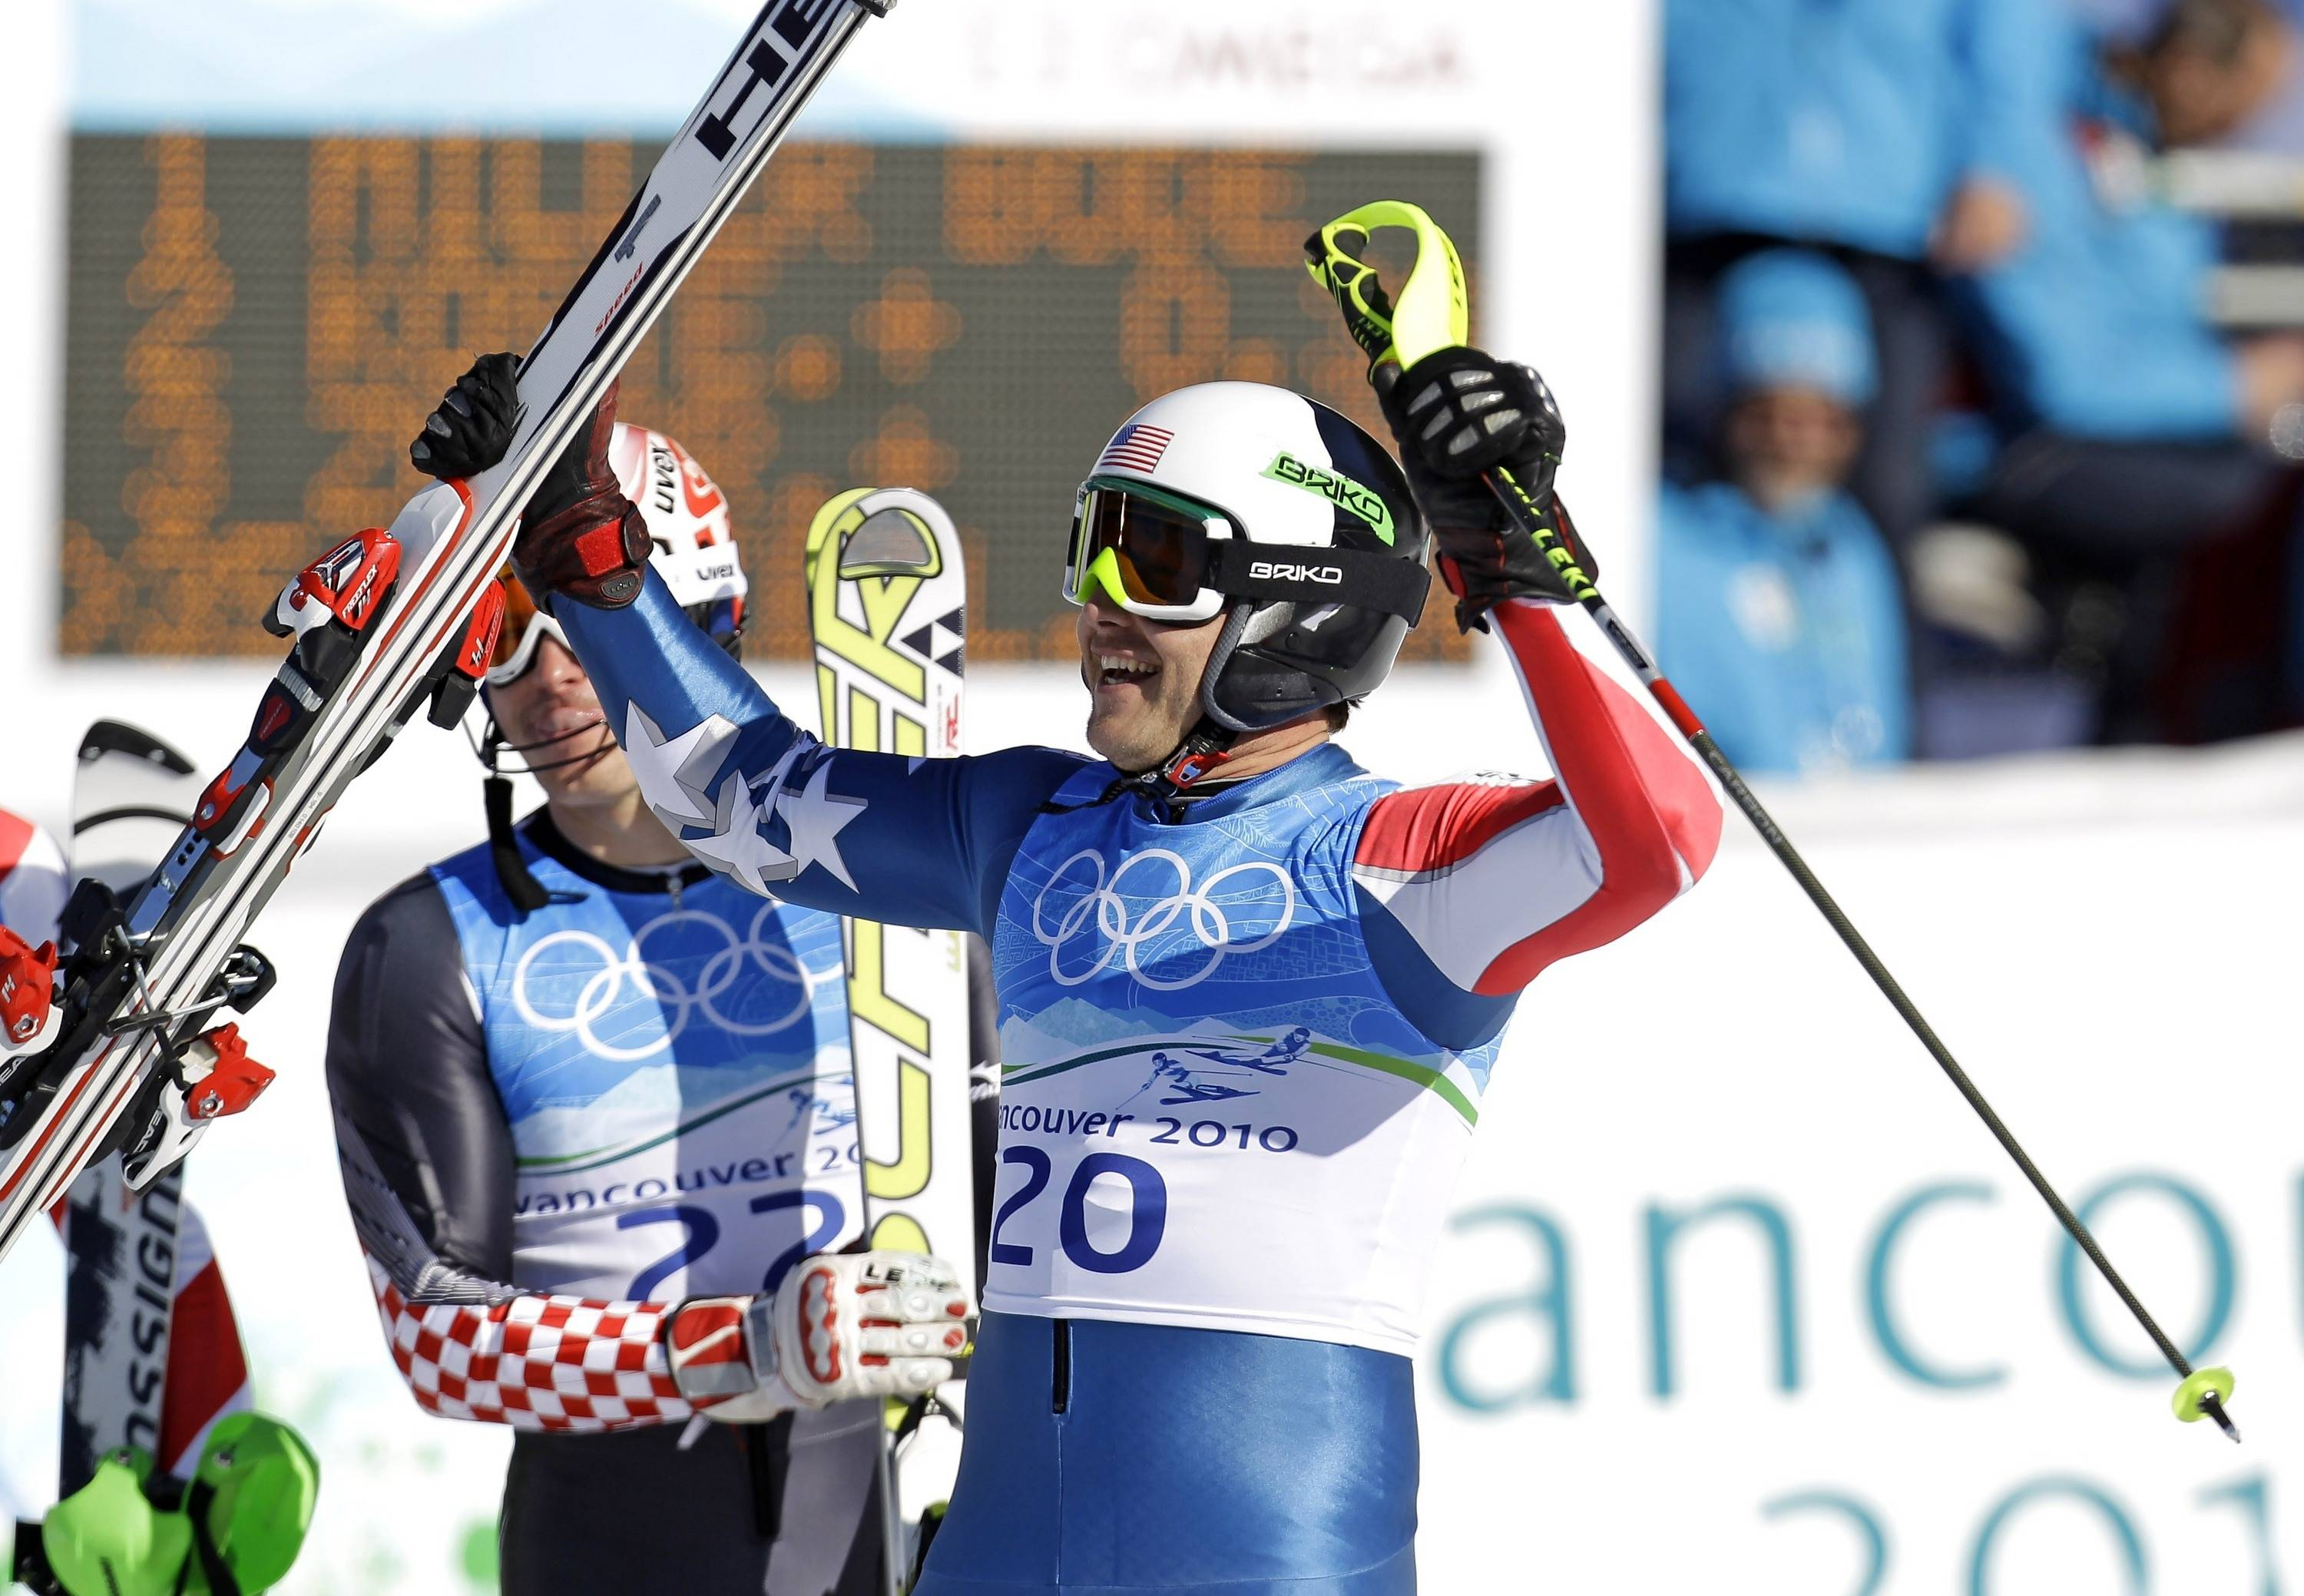 Bode Miller of the United States reacts after winning the gold medal in the Men's super-combined.